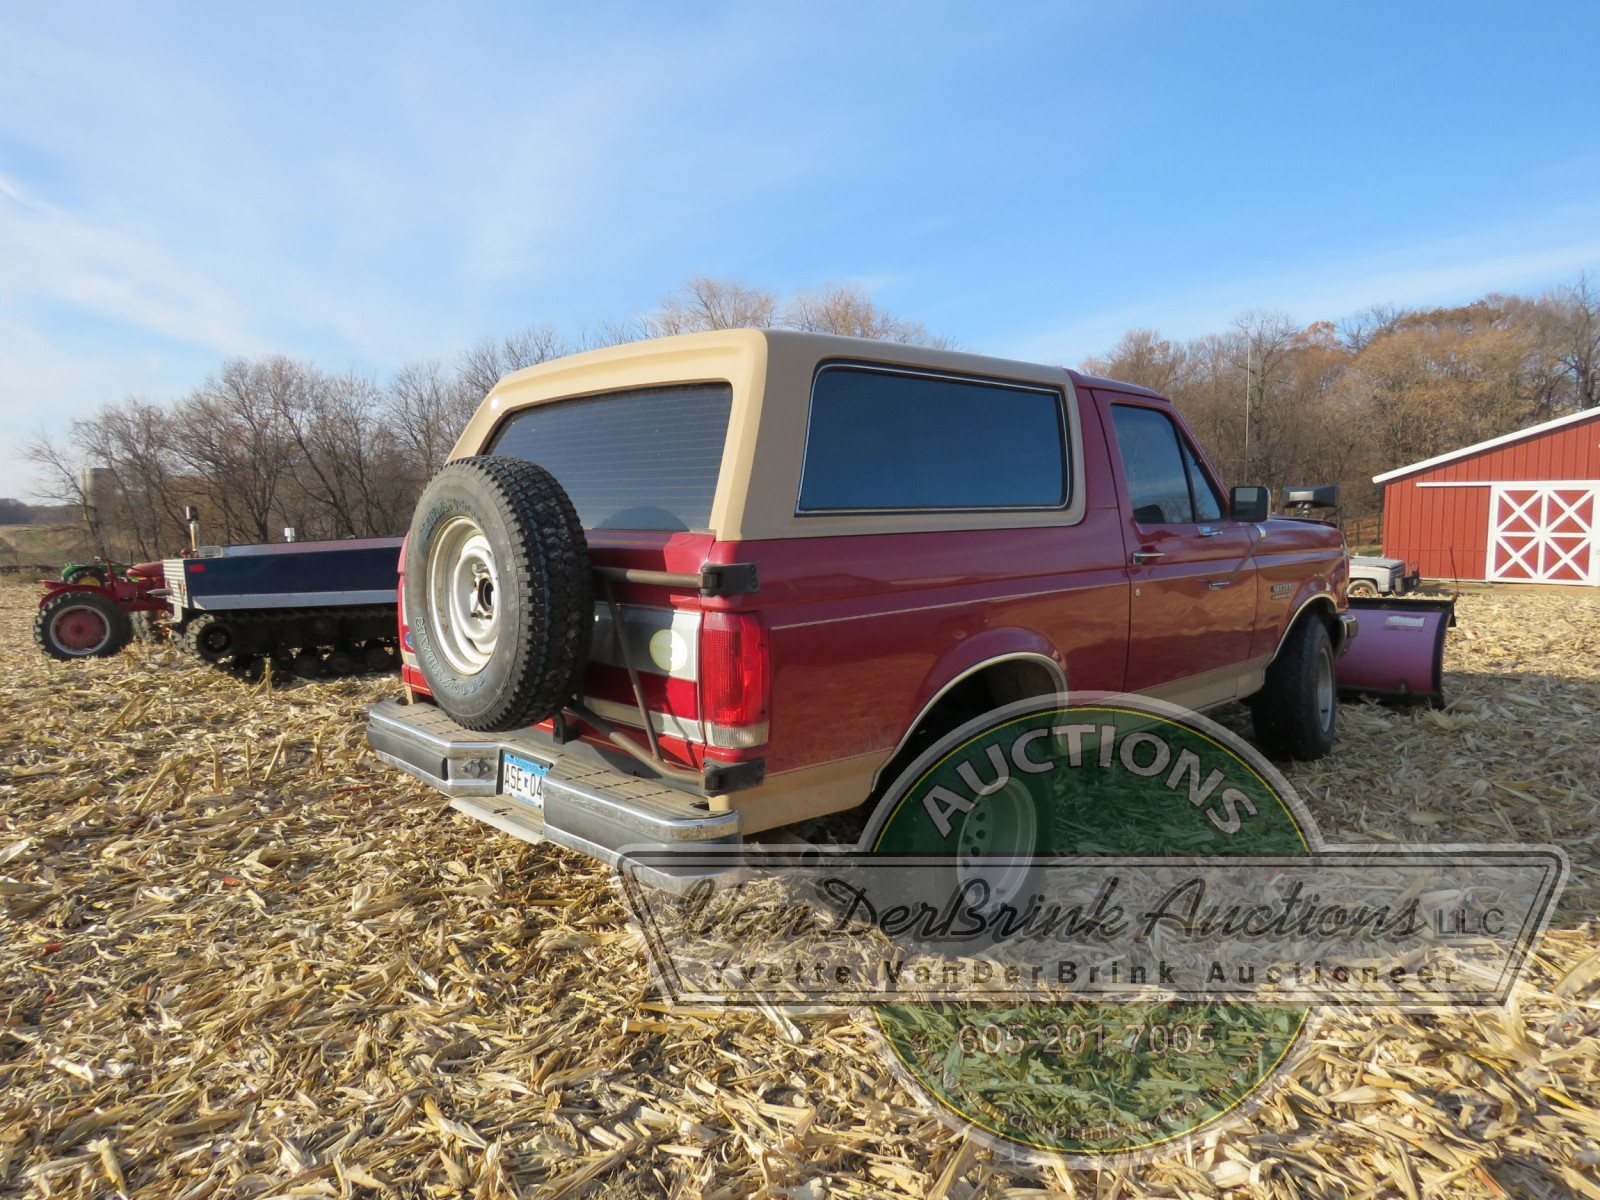 1989 Ford Bronco with Snowplow - Image 6